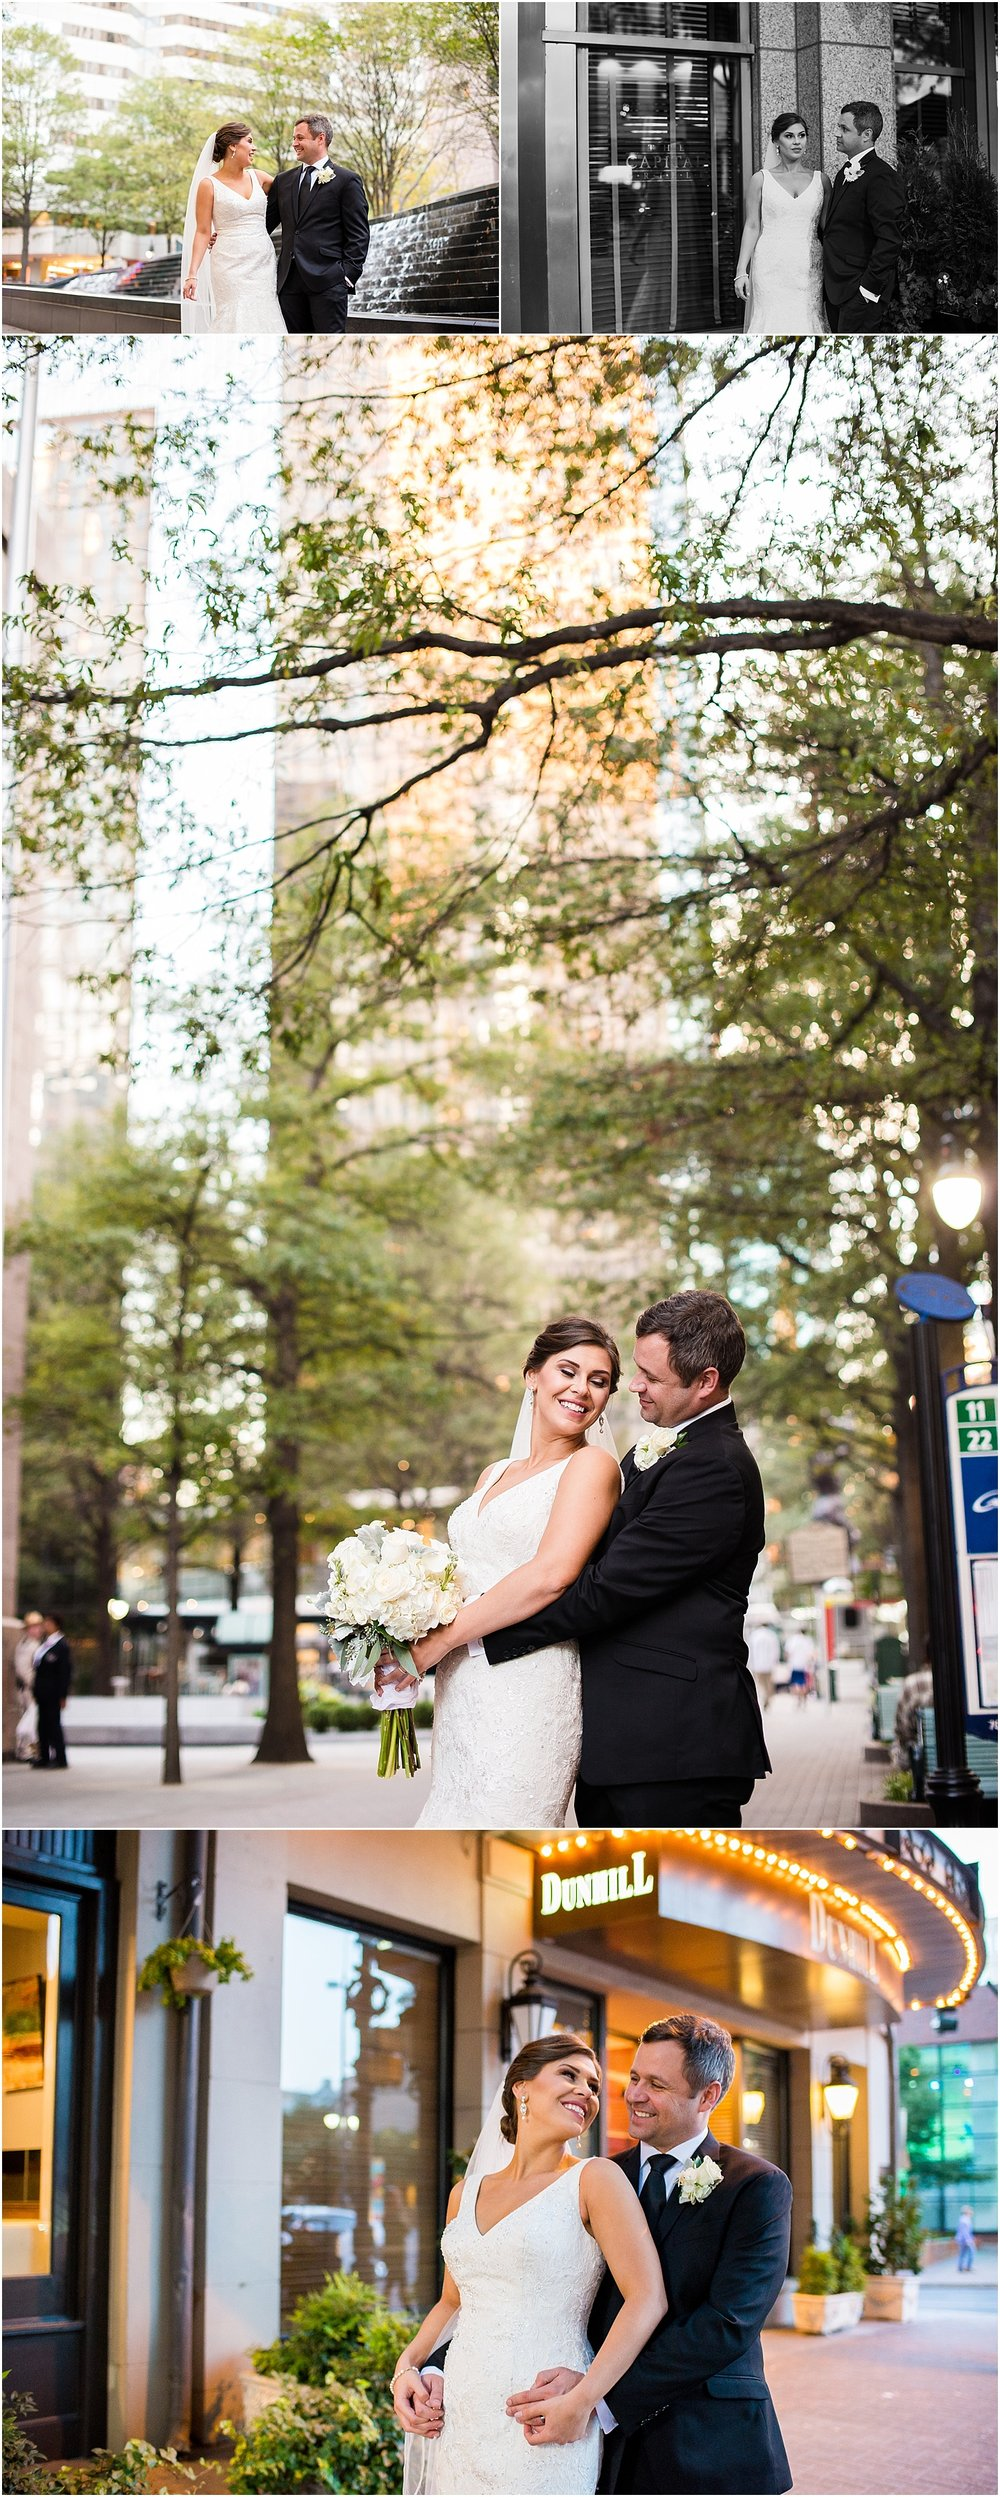 Bride_Groom_Photos_Winter_Urban_Golden_Hour_Charlotte_North_Carolina